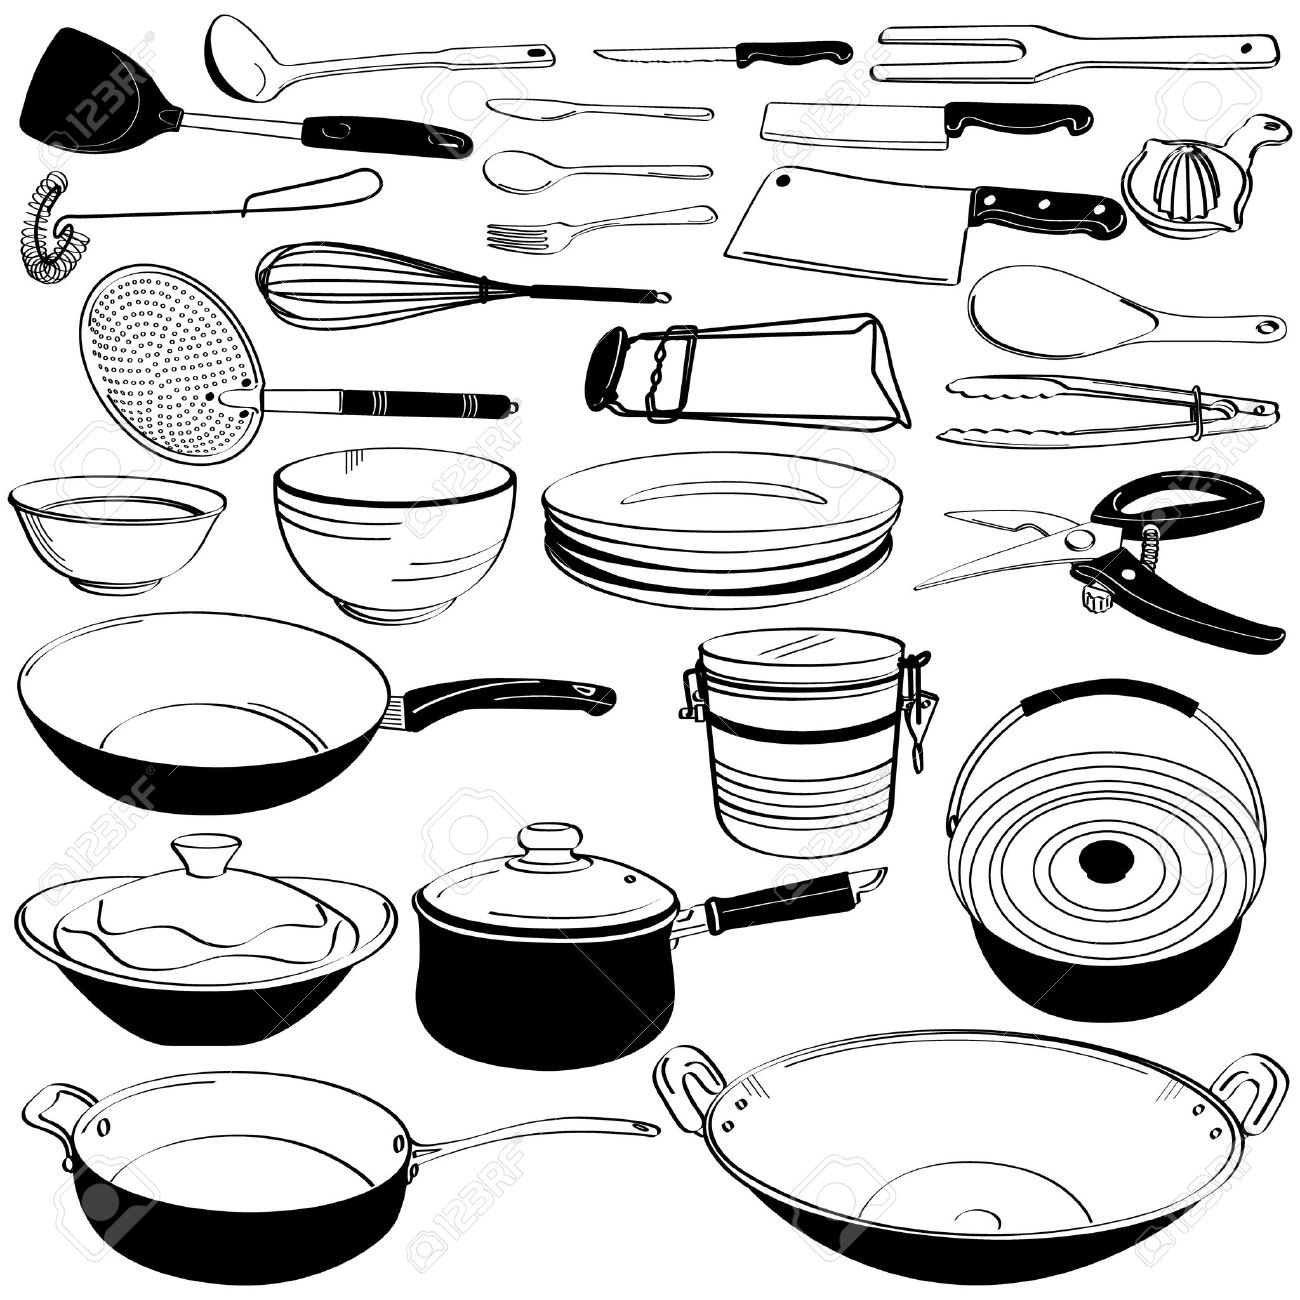 Kitchen Tools Drawings kitchen tool utensil equipment doodle drawing sketch royalty free